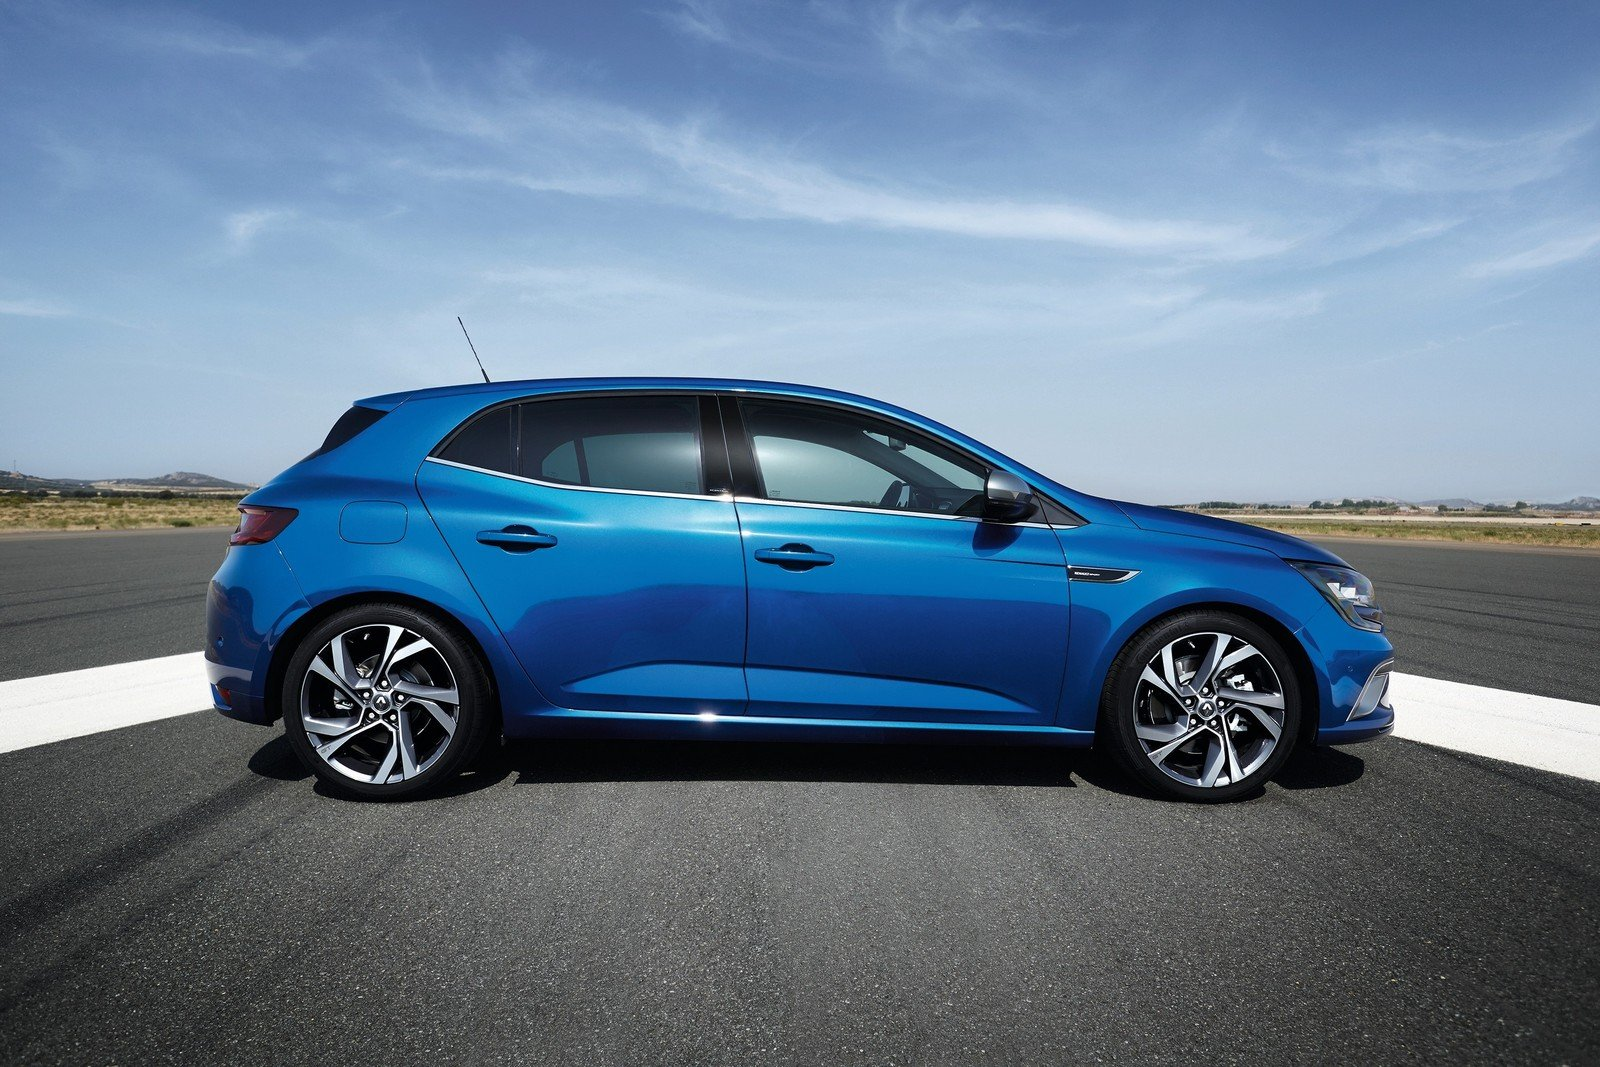 2016 renault m gane gt picture 646277 car review top speed. Black Bedroom Furniture Sets. Home Design Ideas